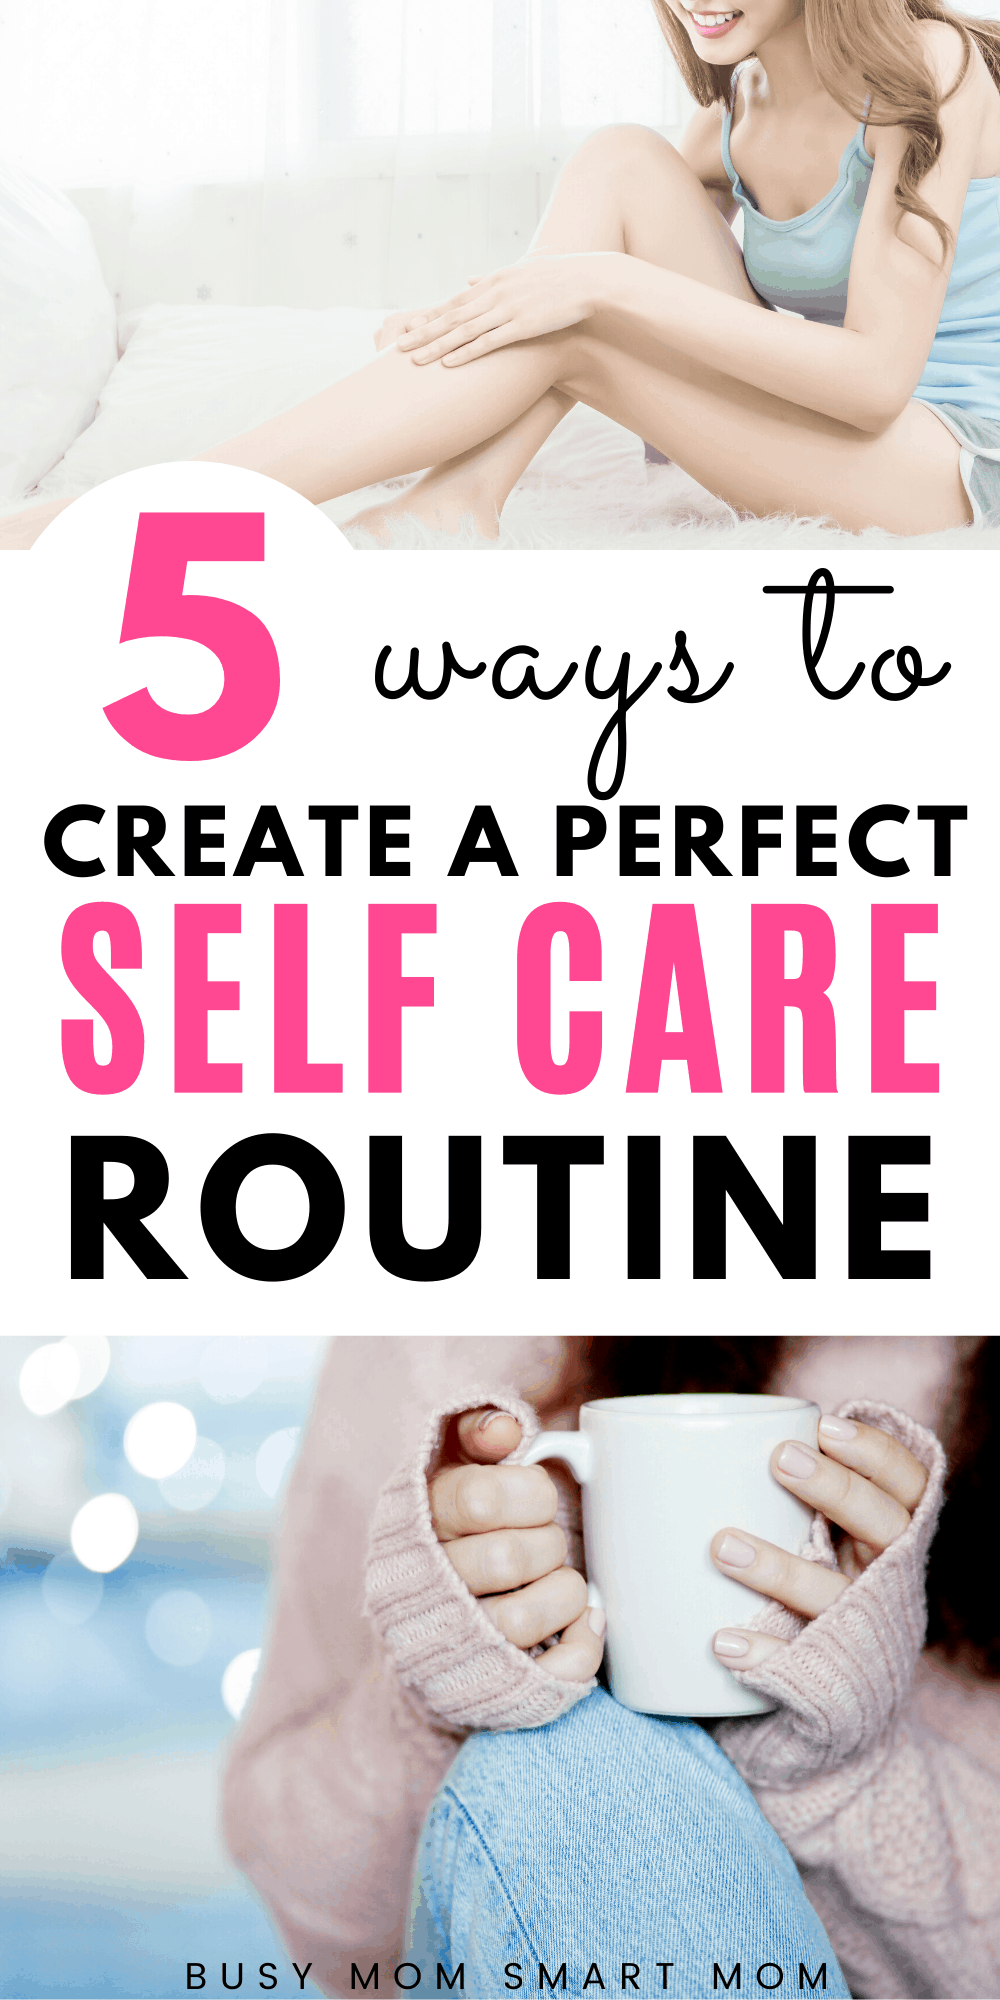 self care routine ideas